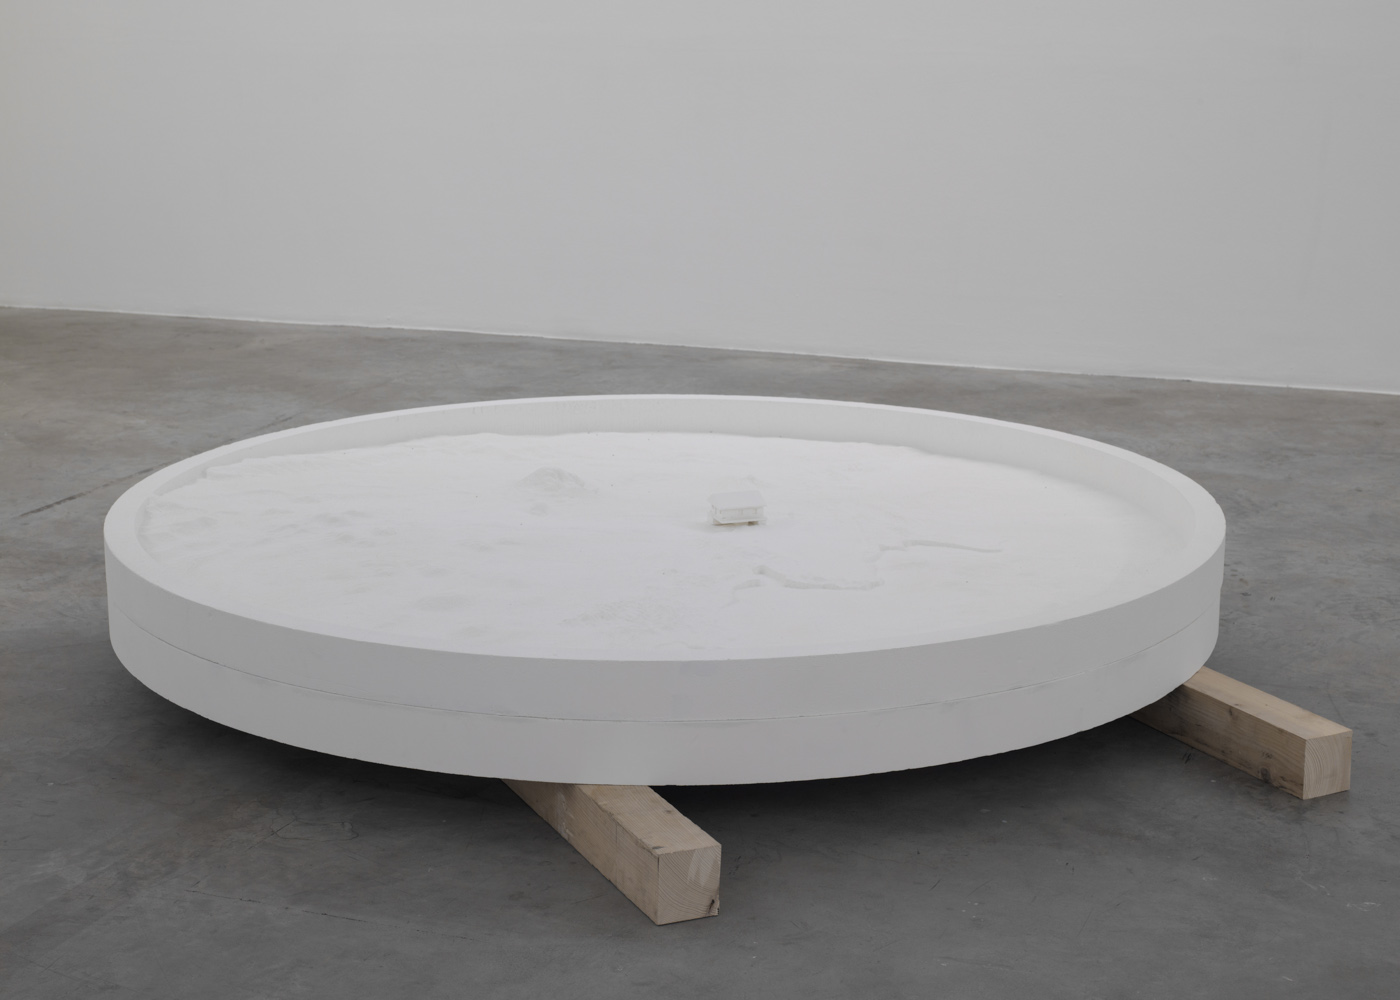 Melik Ohanian Ommx Studio Archive 95 Datcha Project  # Dakar Table Tele En Bois Massif